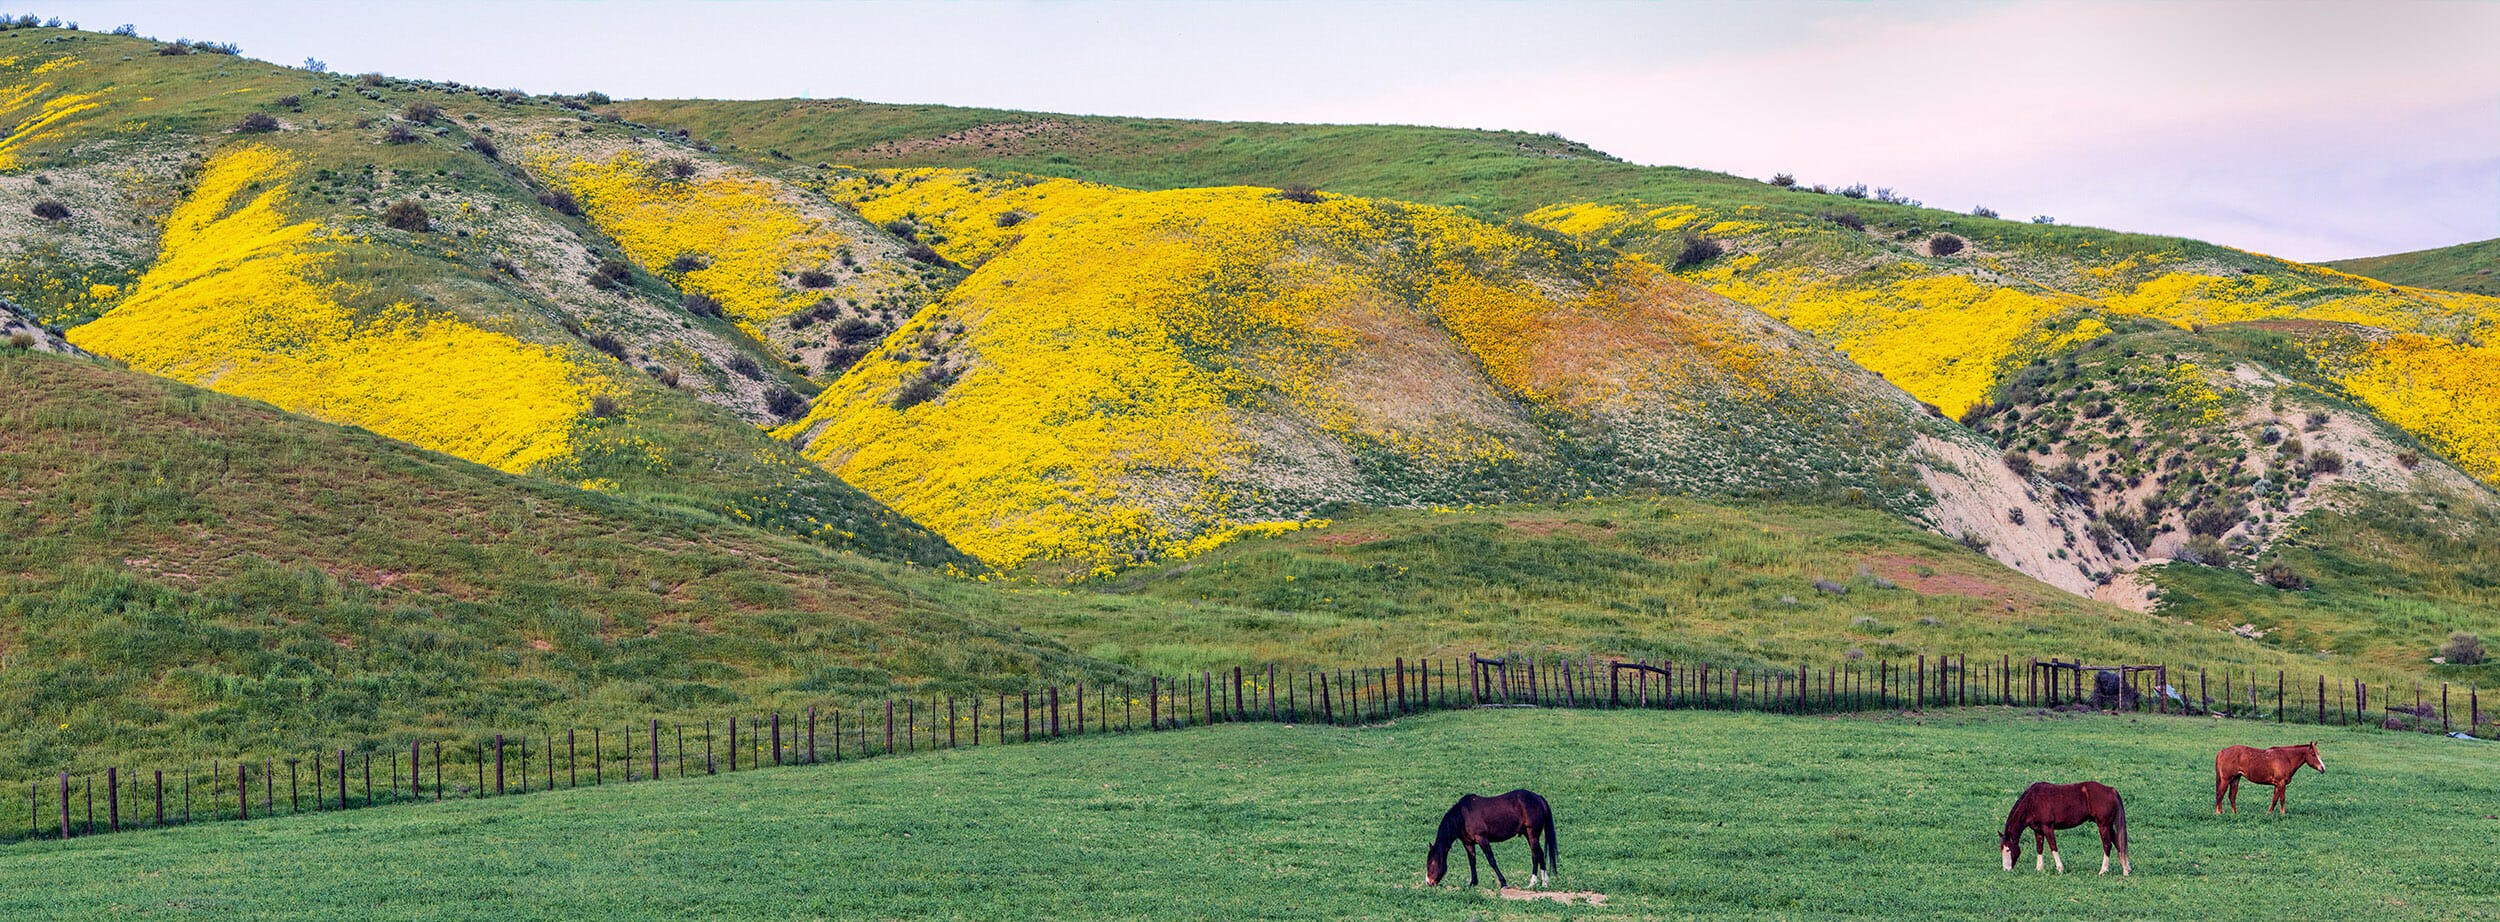 Land Almost Lost: Carrizo Plain National Monument